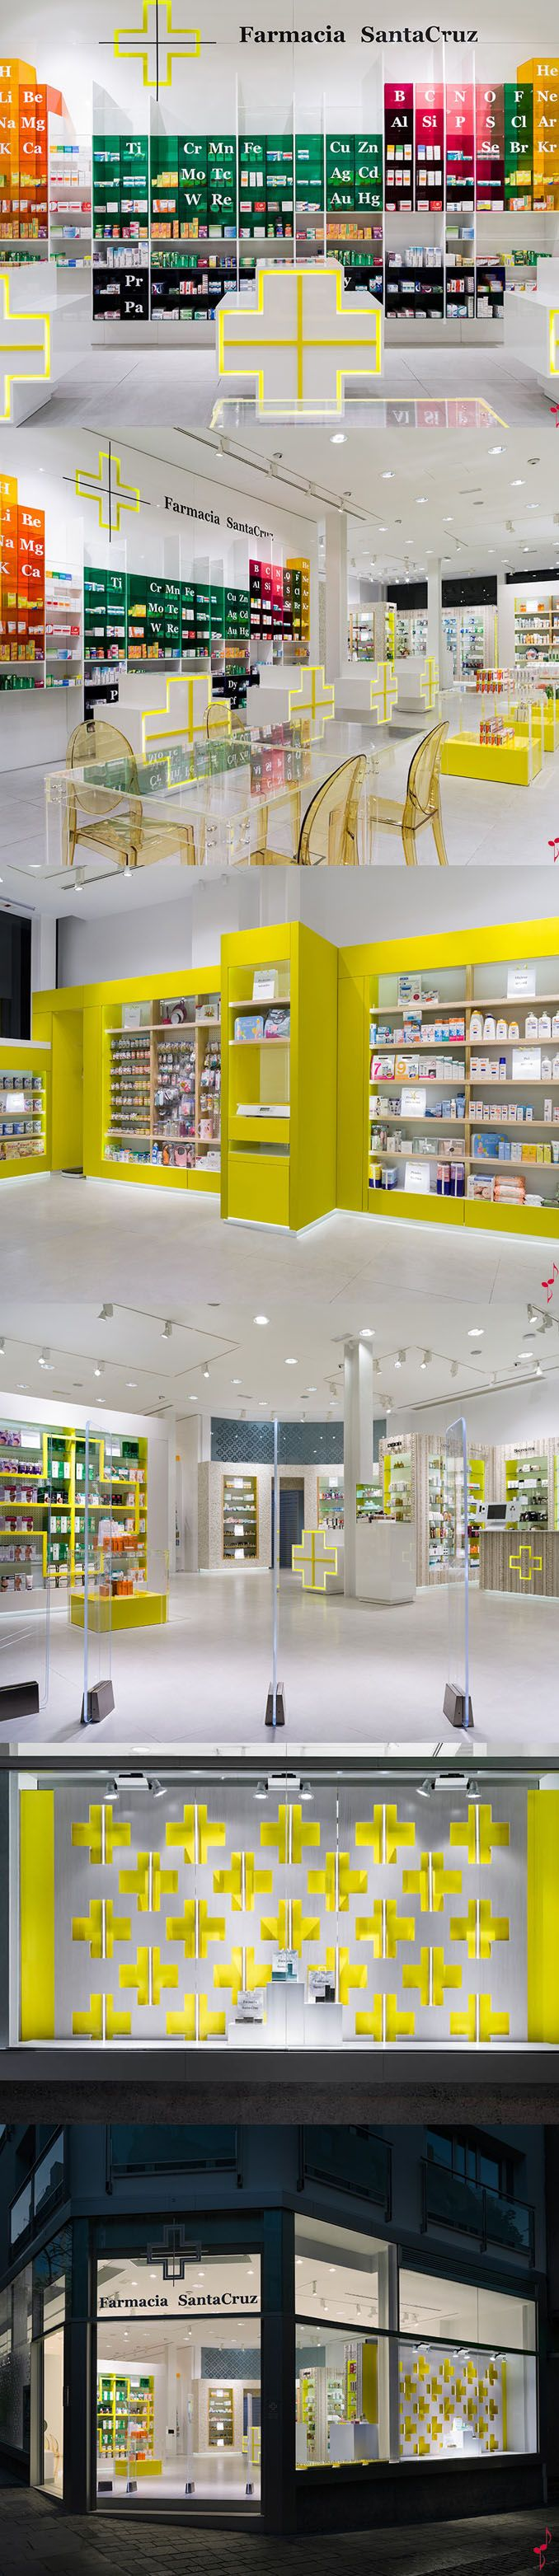 SantaCruz Pharmacy by Marketing-Jazz, Santa Cruz de Tenerife.                                                                                                                                                                                 More